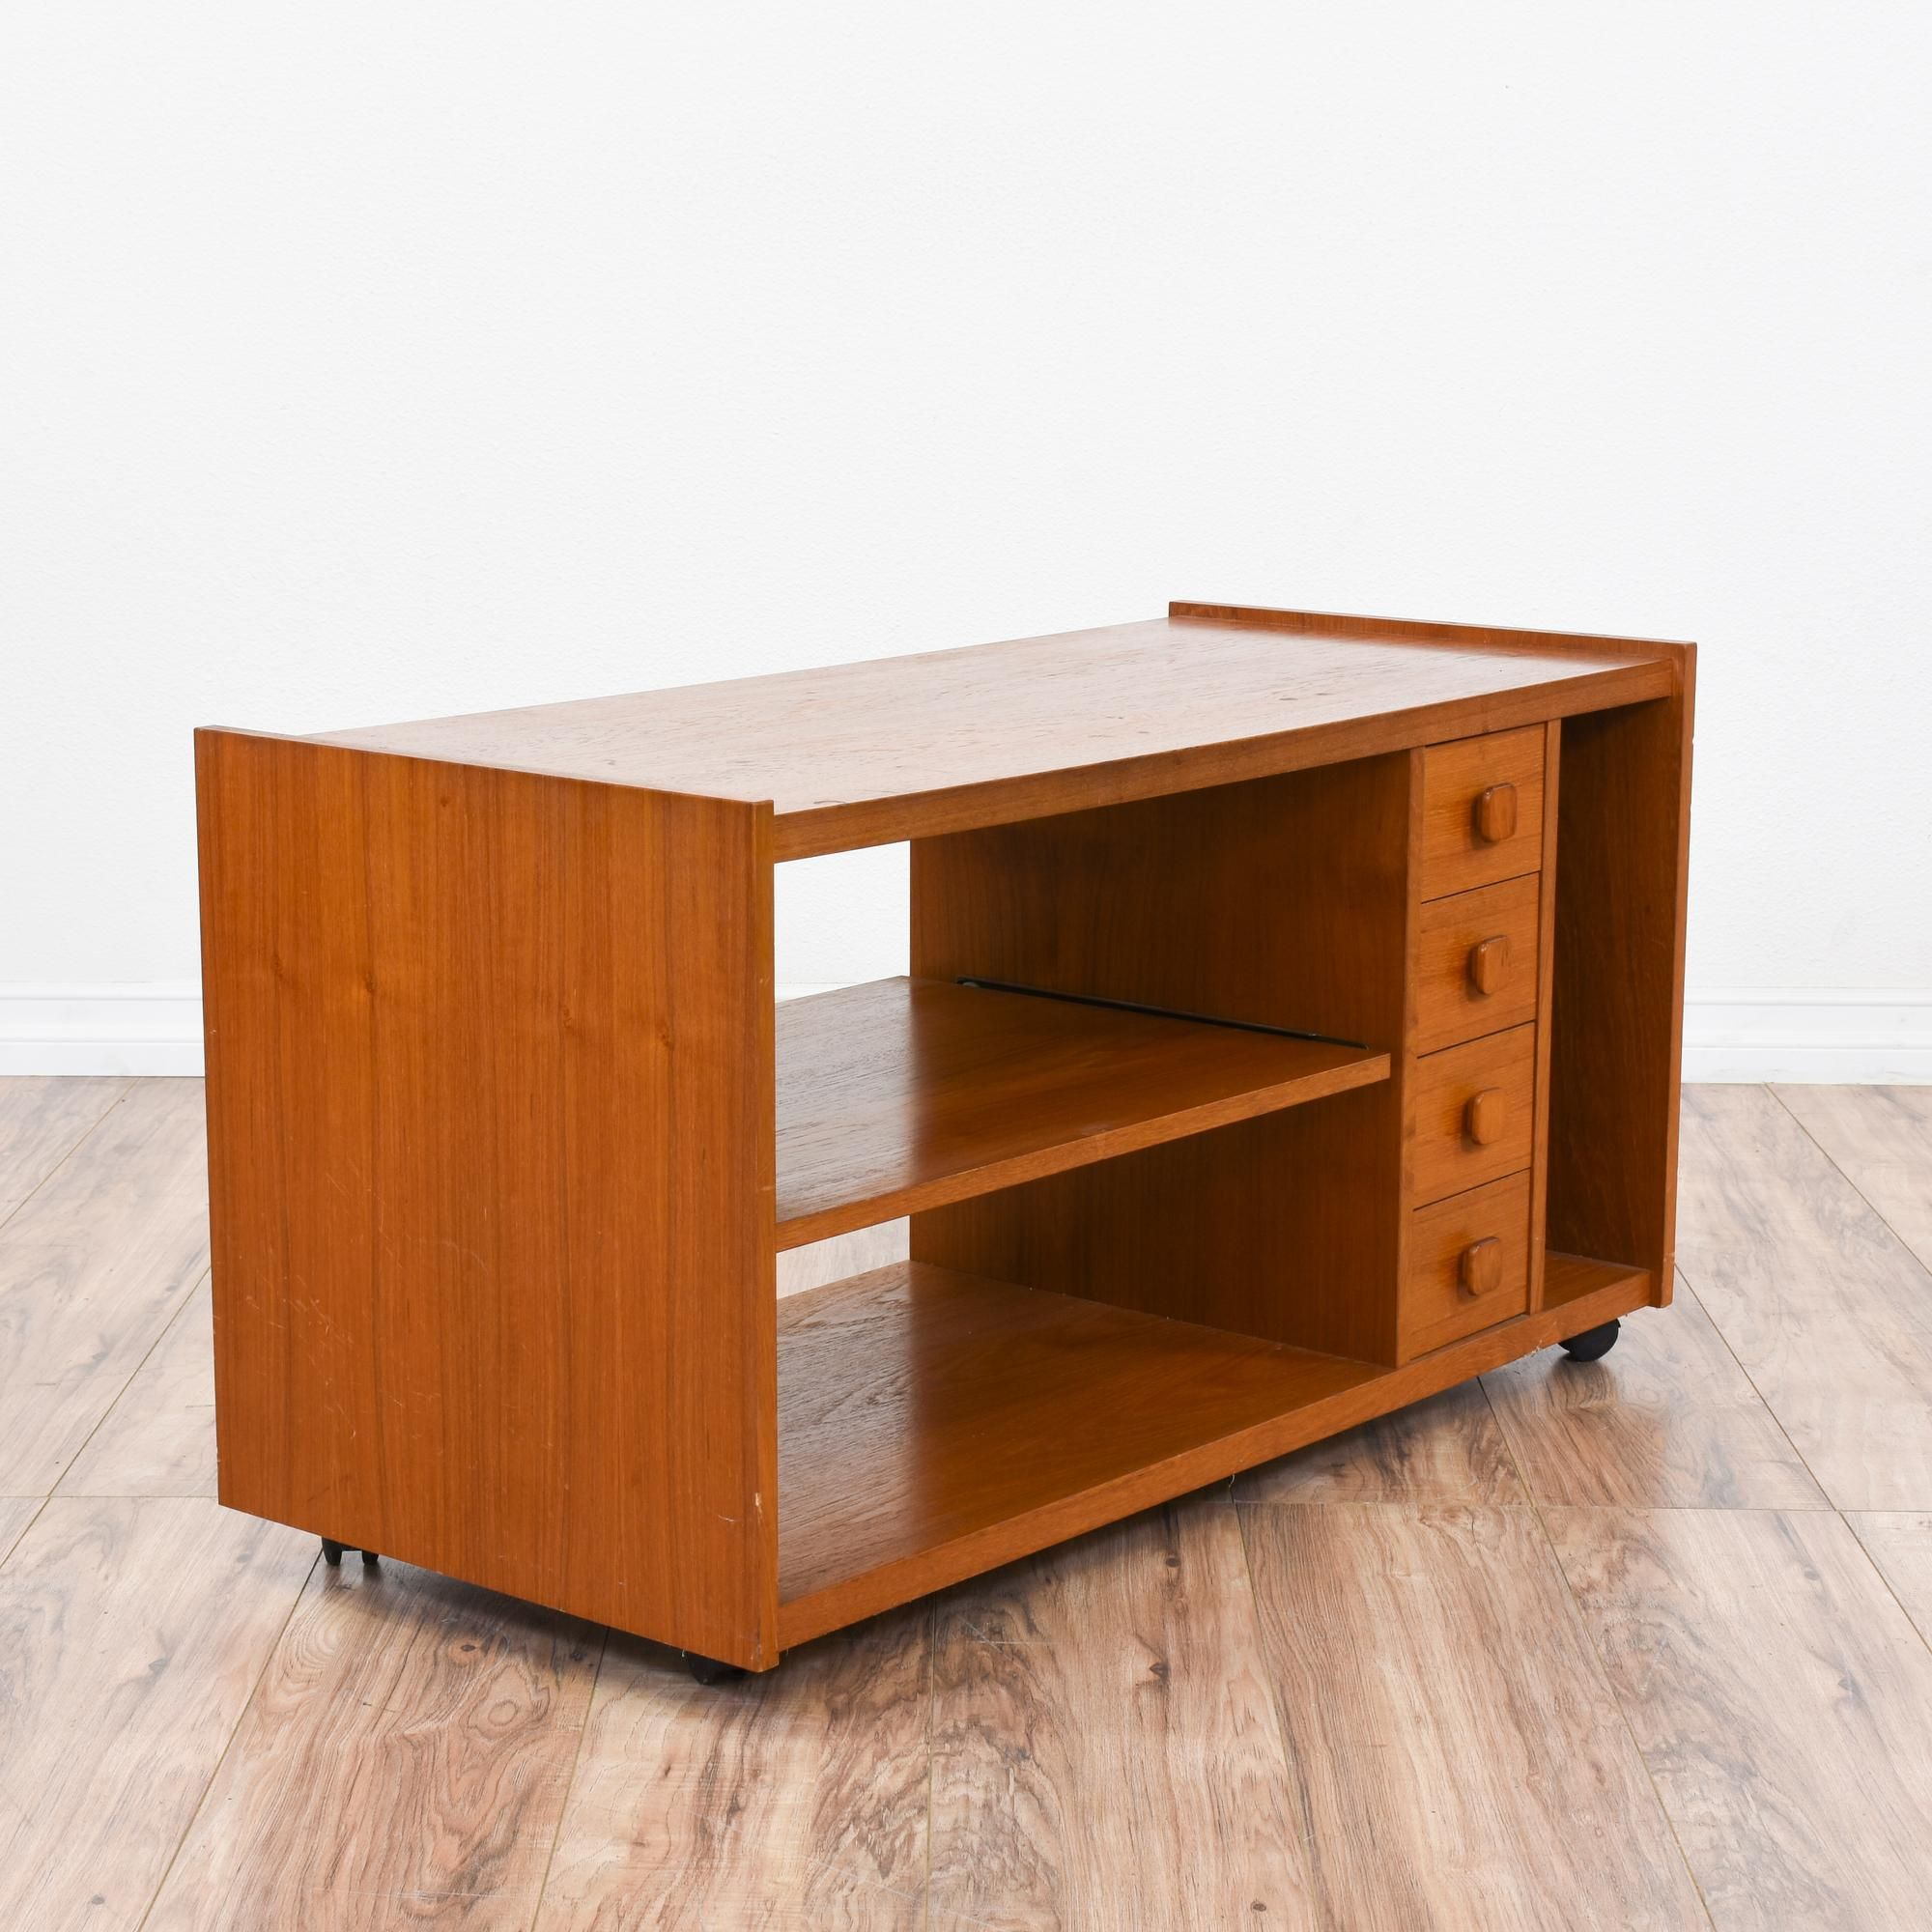 This Rolling Danish Modern Media Cabinet Is Featured In A Solid Wood With A  Gorgeous Teak